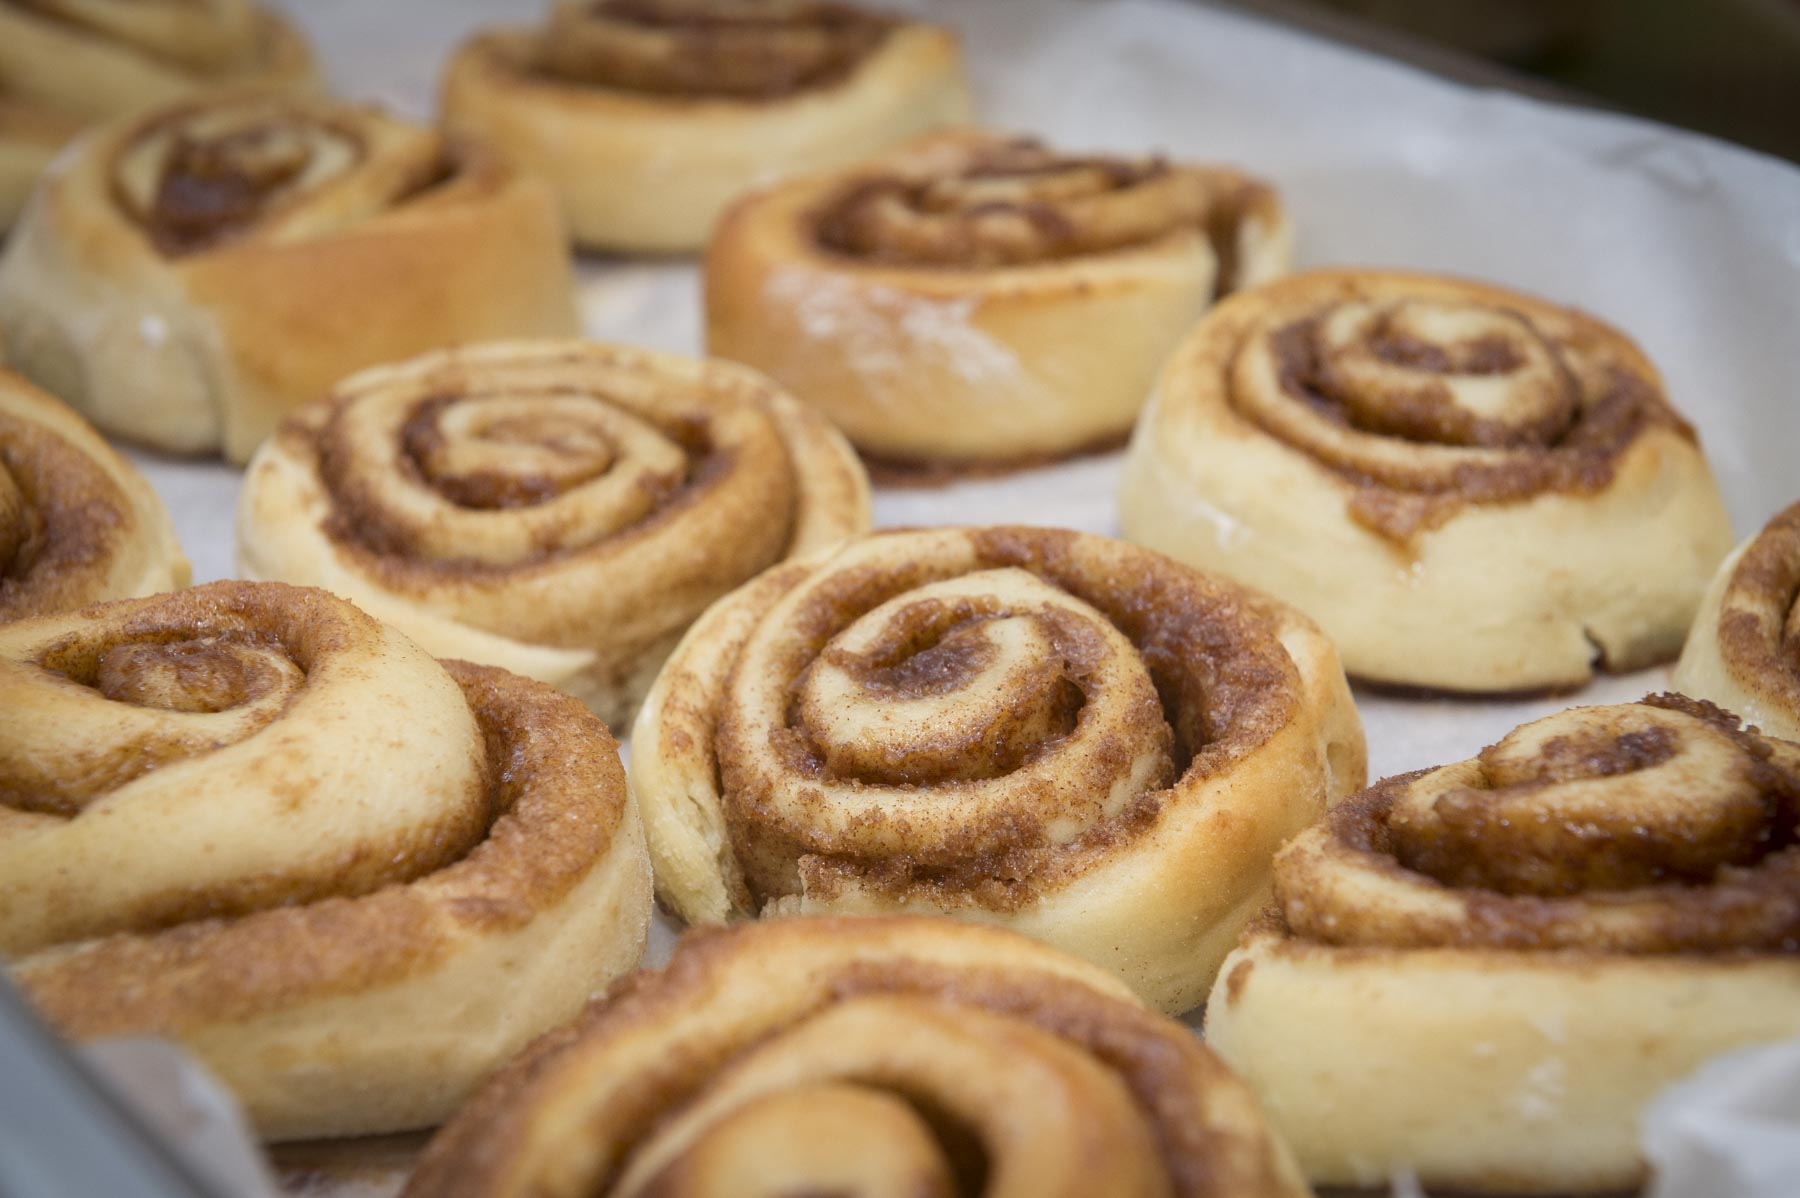 Together, they baked cinnamon buns that were served for the afternoon snack.